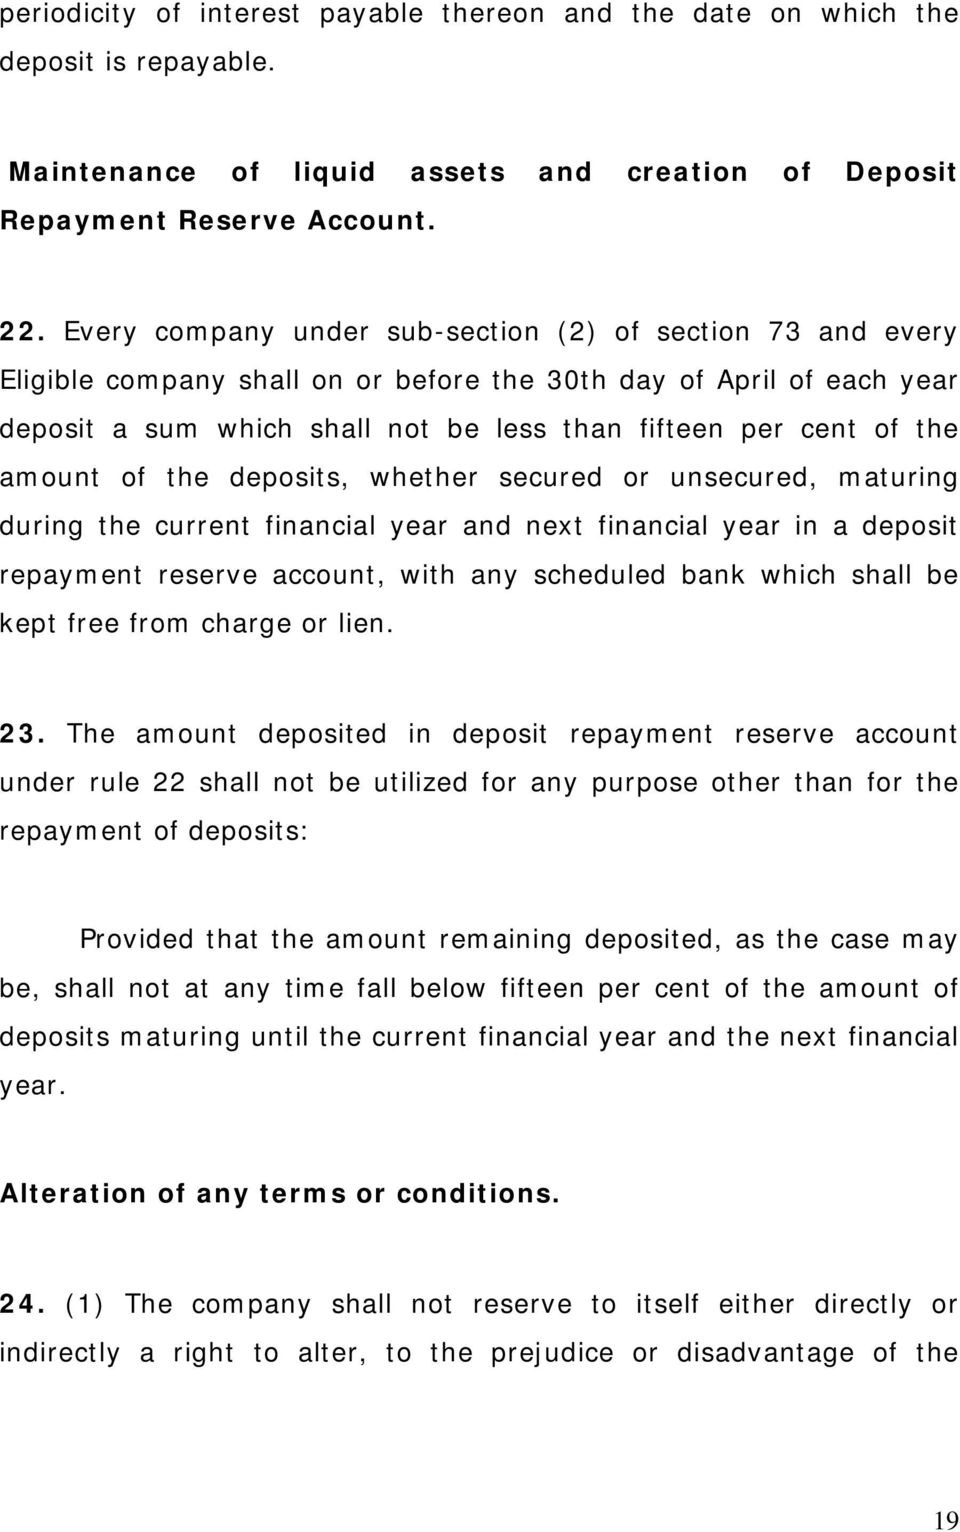 amount of the deposits, whether secured or unsecured, maturing during the current financial year and next financial year in a deposit repayment reserve account, with any scheduled bank which shall be